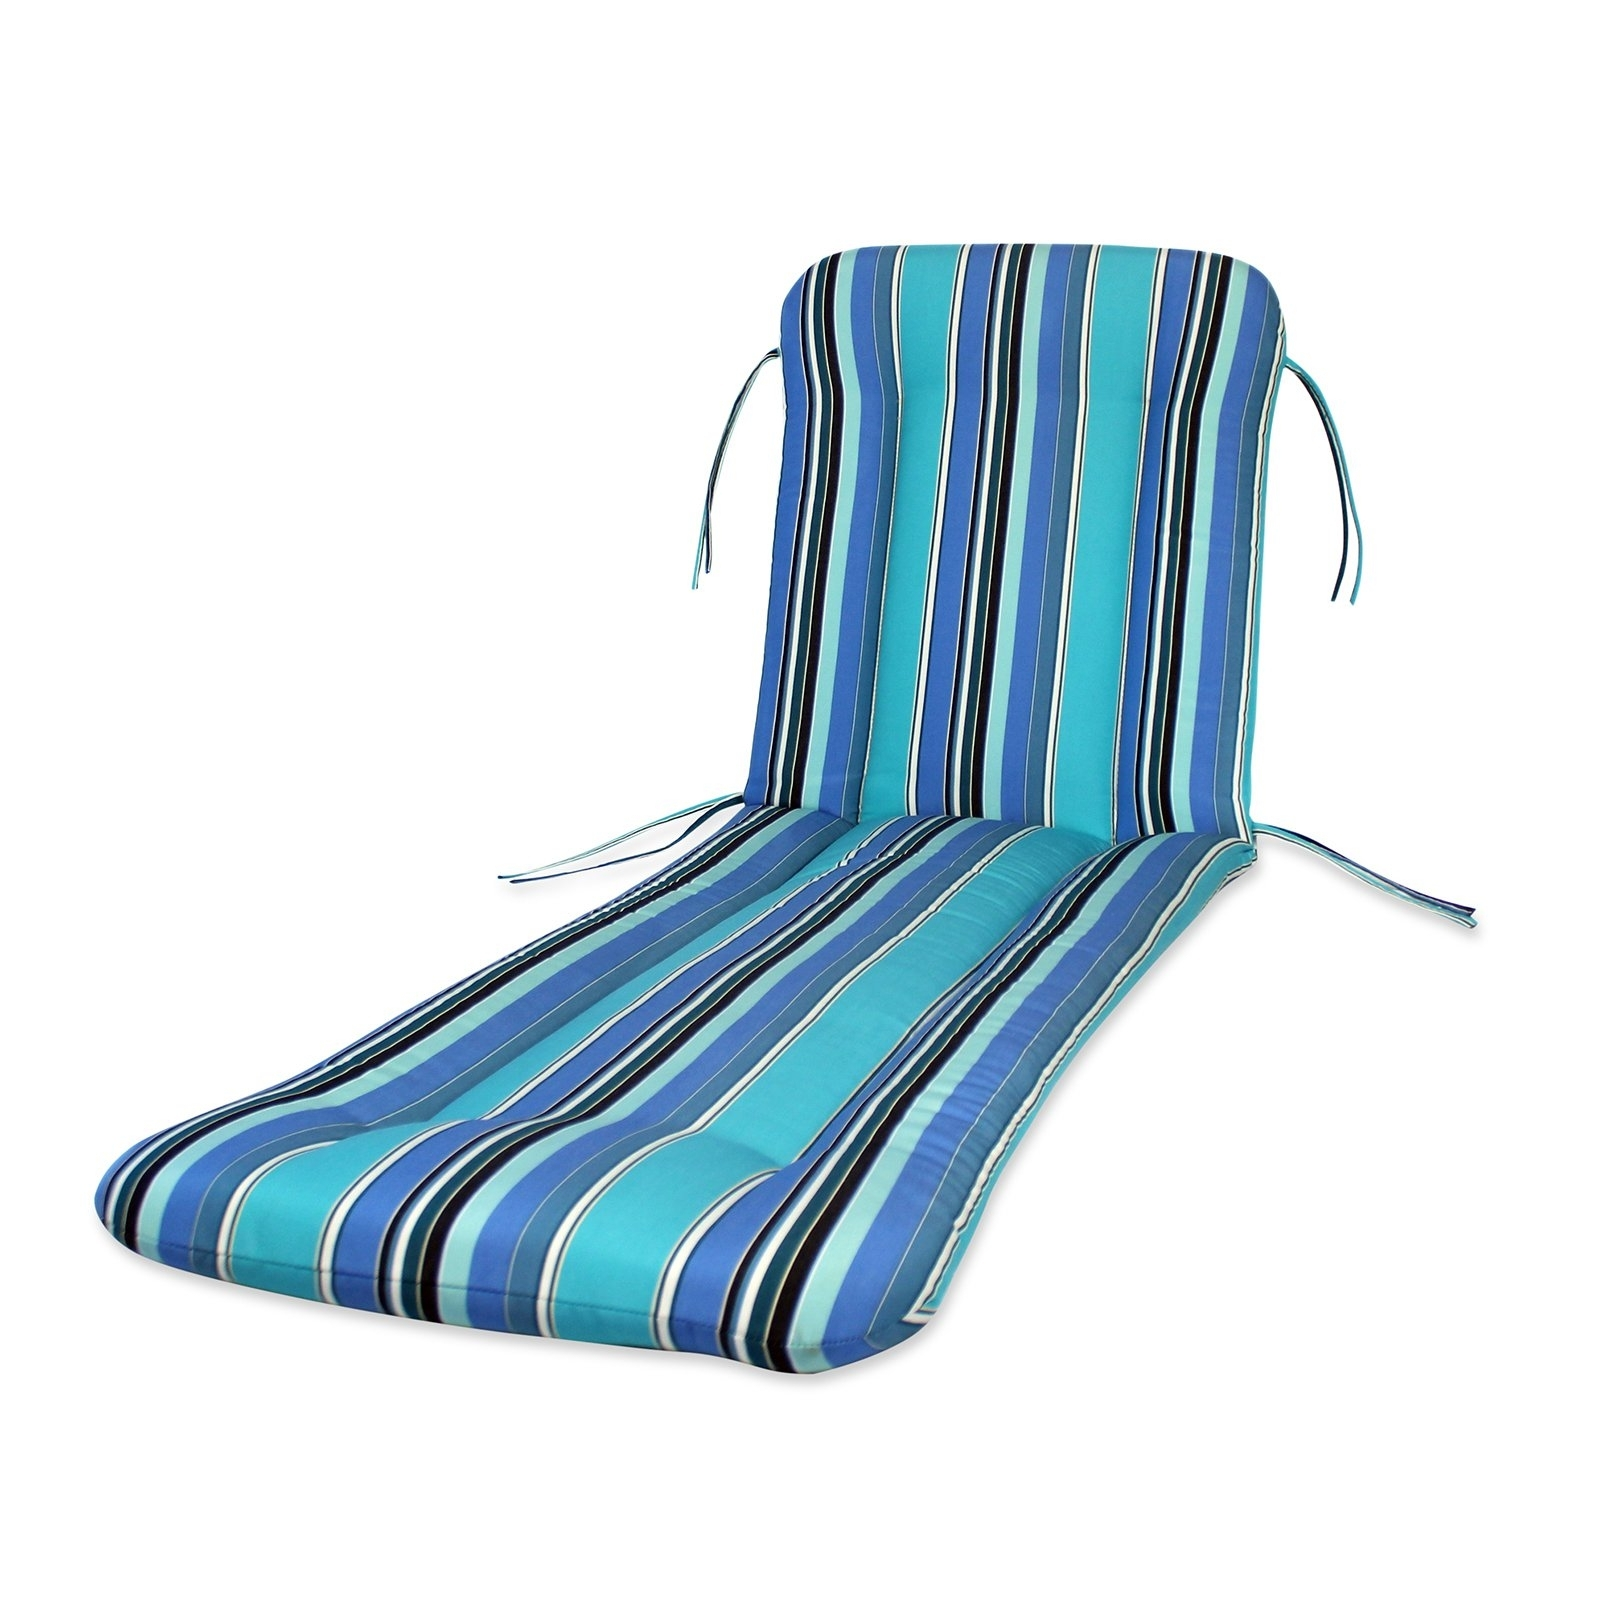 Chaise Lounge Chair Cushions Regarding 2018 Comfort Classics Sunbrella Chaise Lounge Cushion – Walmart (View 3 of 15)